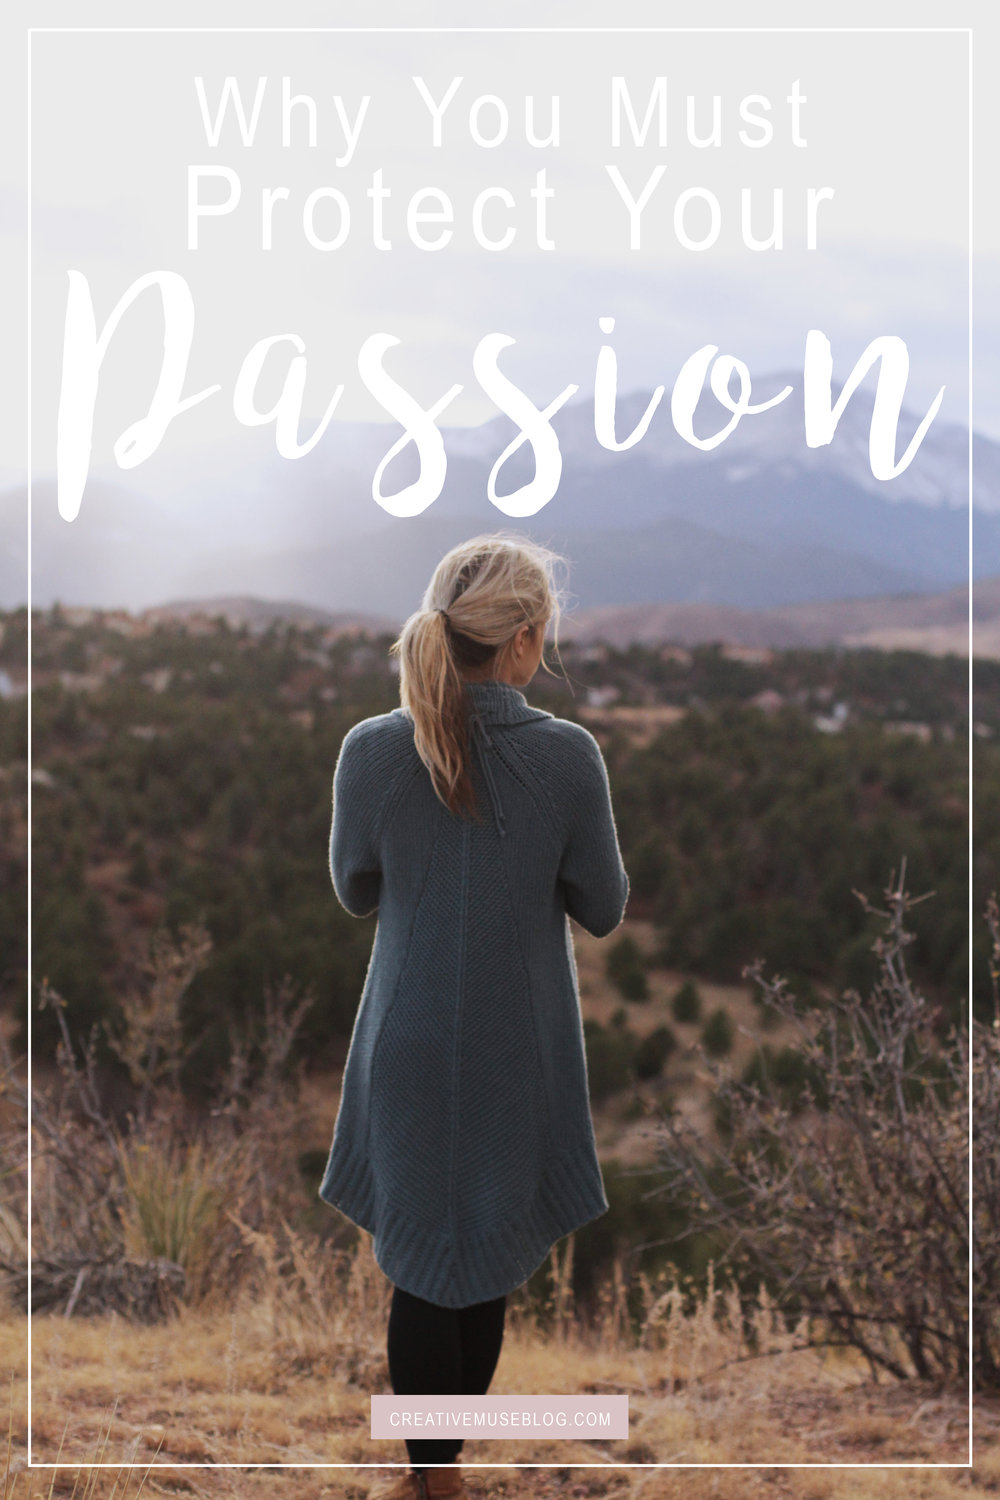 I don't know if you're anything like me, but there are those days when I feel incredible pumped up about what God is doing in my life and the calling He has for me and then there are those days when I can't seem to get excited about anything. Can you relate?  I would consider myself a pretty passionate person; someone who thrives on creating and moving forward into my future. But why is it that these not-so-passionate-days can come and really make a dent in my ability, and my desire, to keep